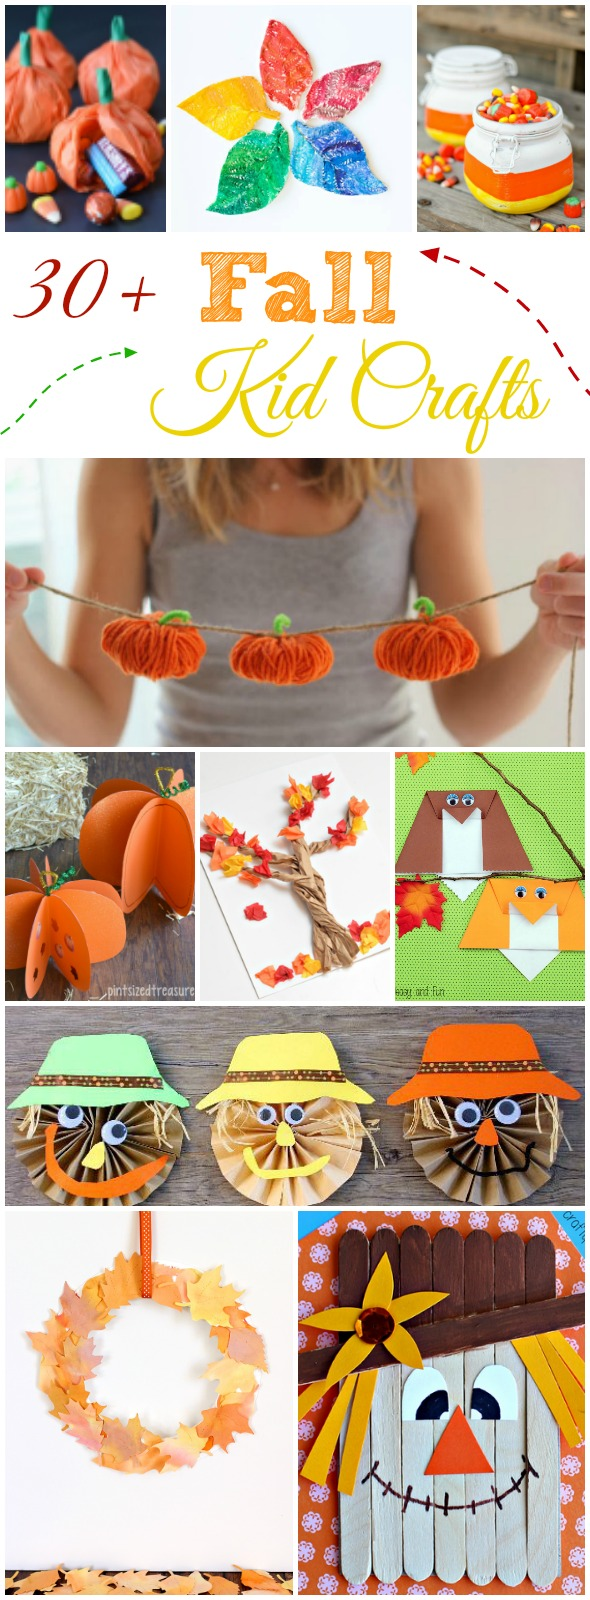 30+ Fall Kid Crafts